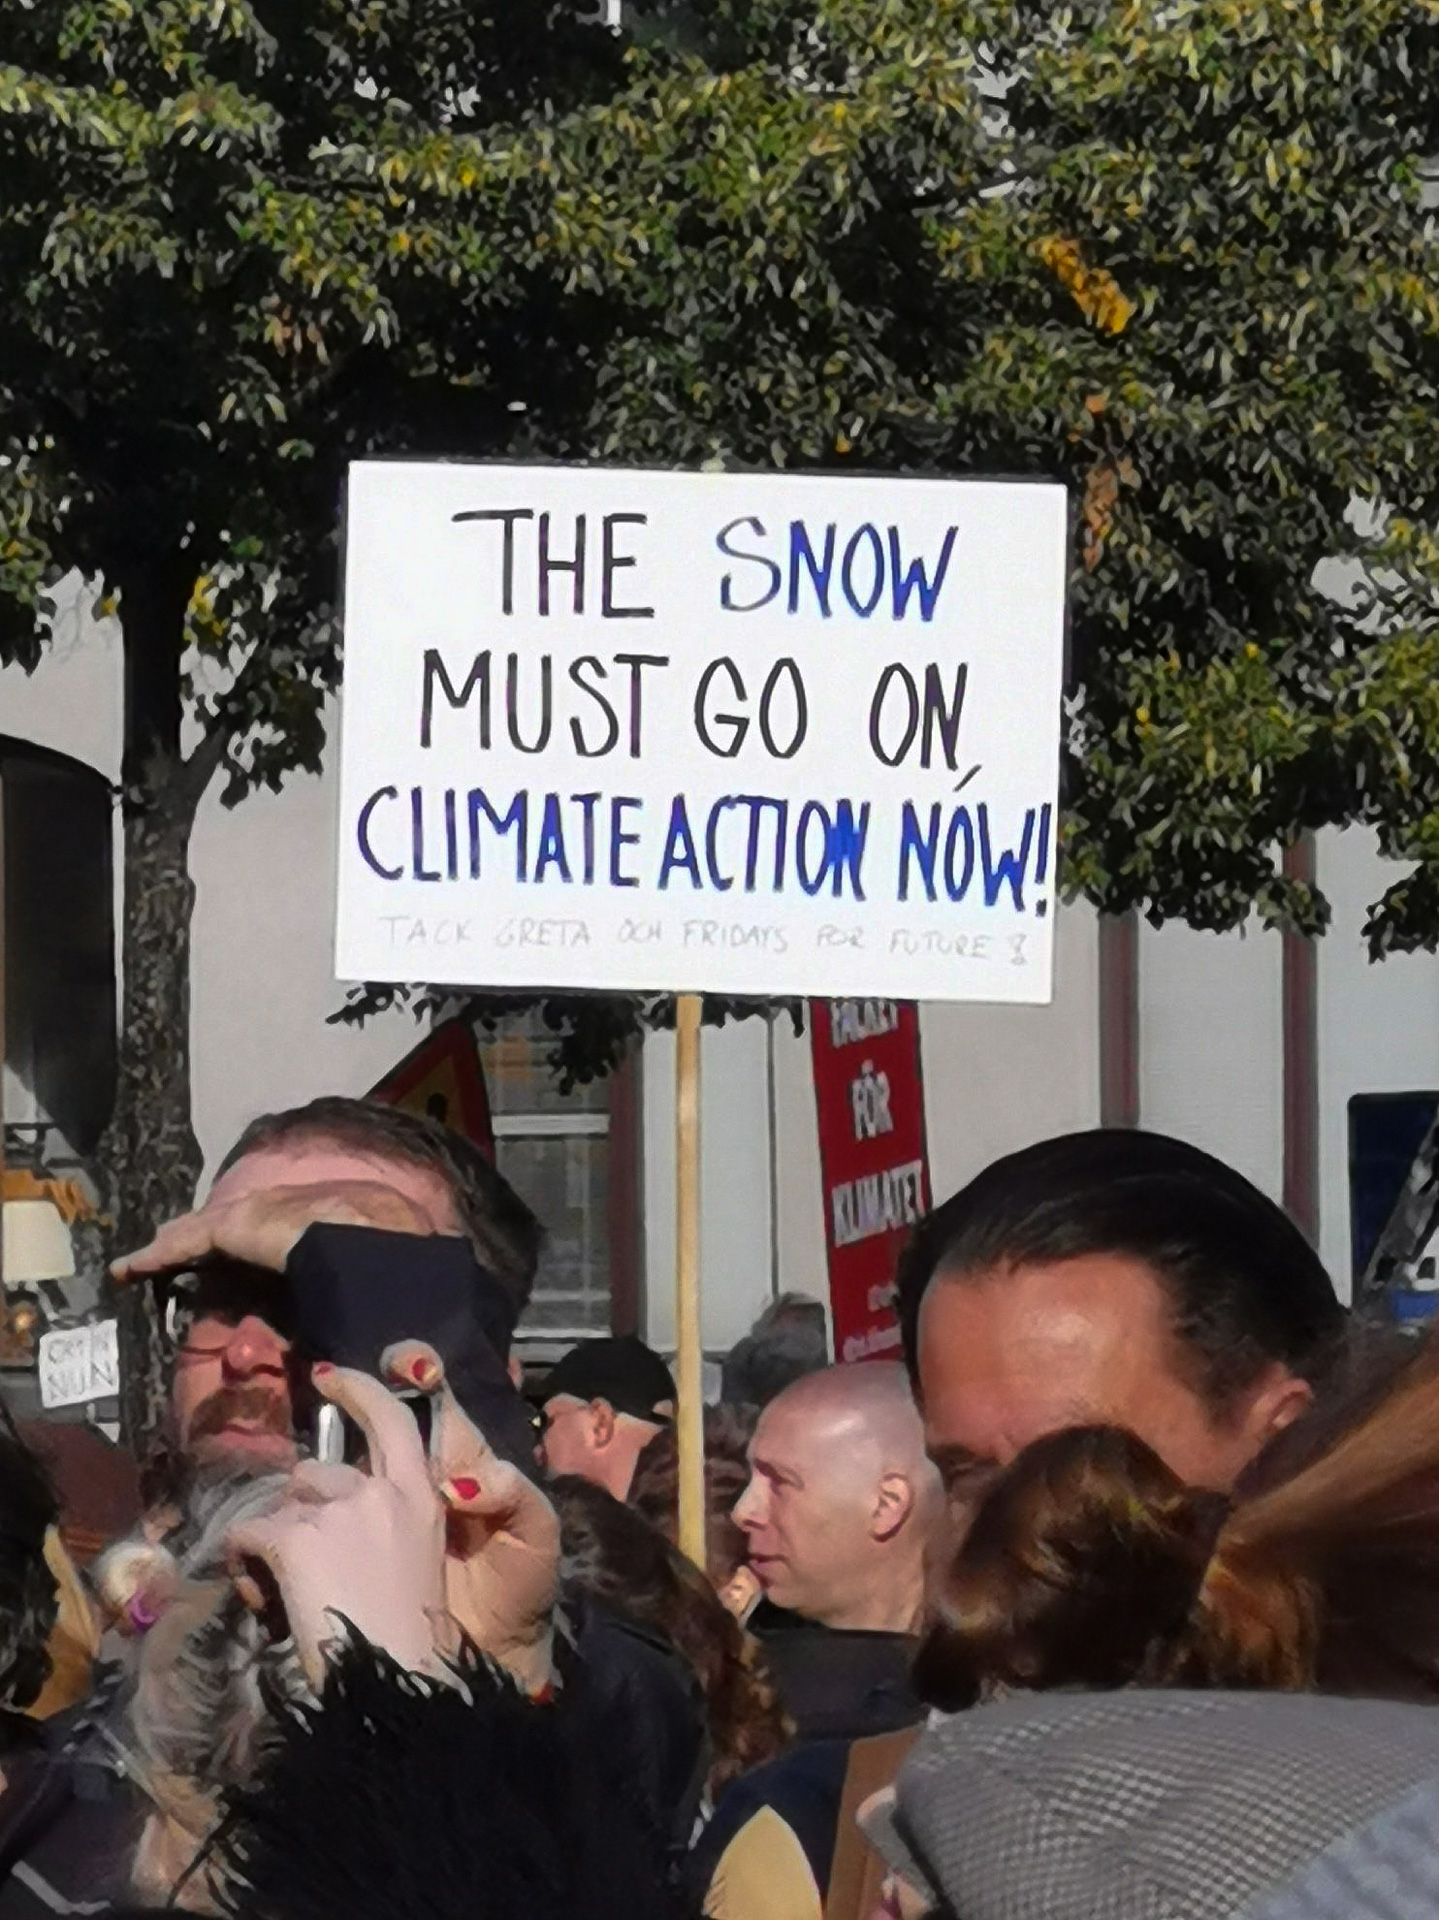 The snow must go on! // Global Climate Strike 2019-09. Bild: copy Susanne / kalixsussi